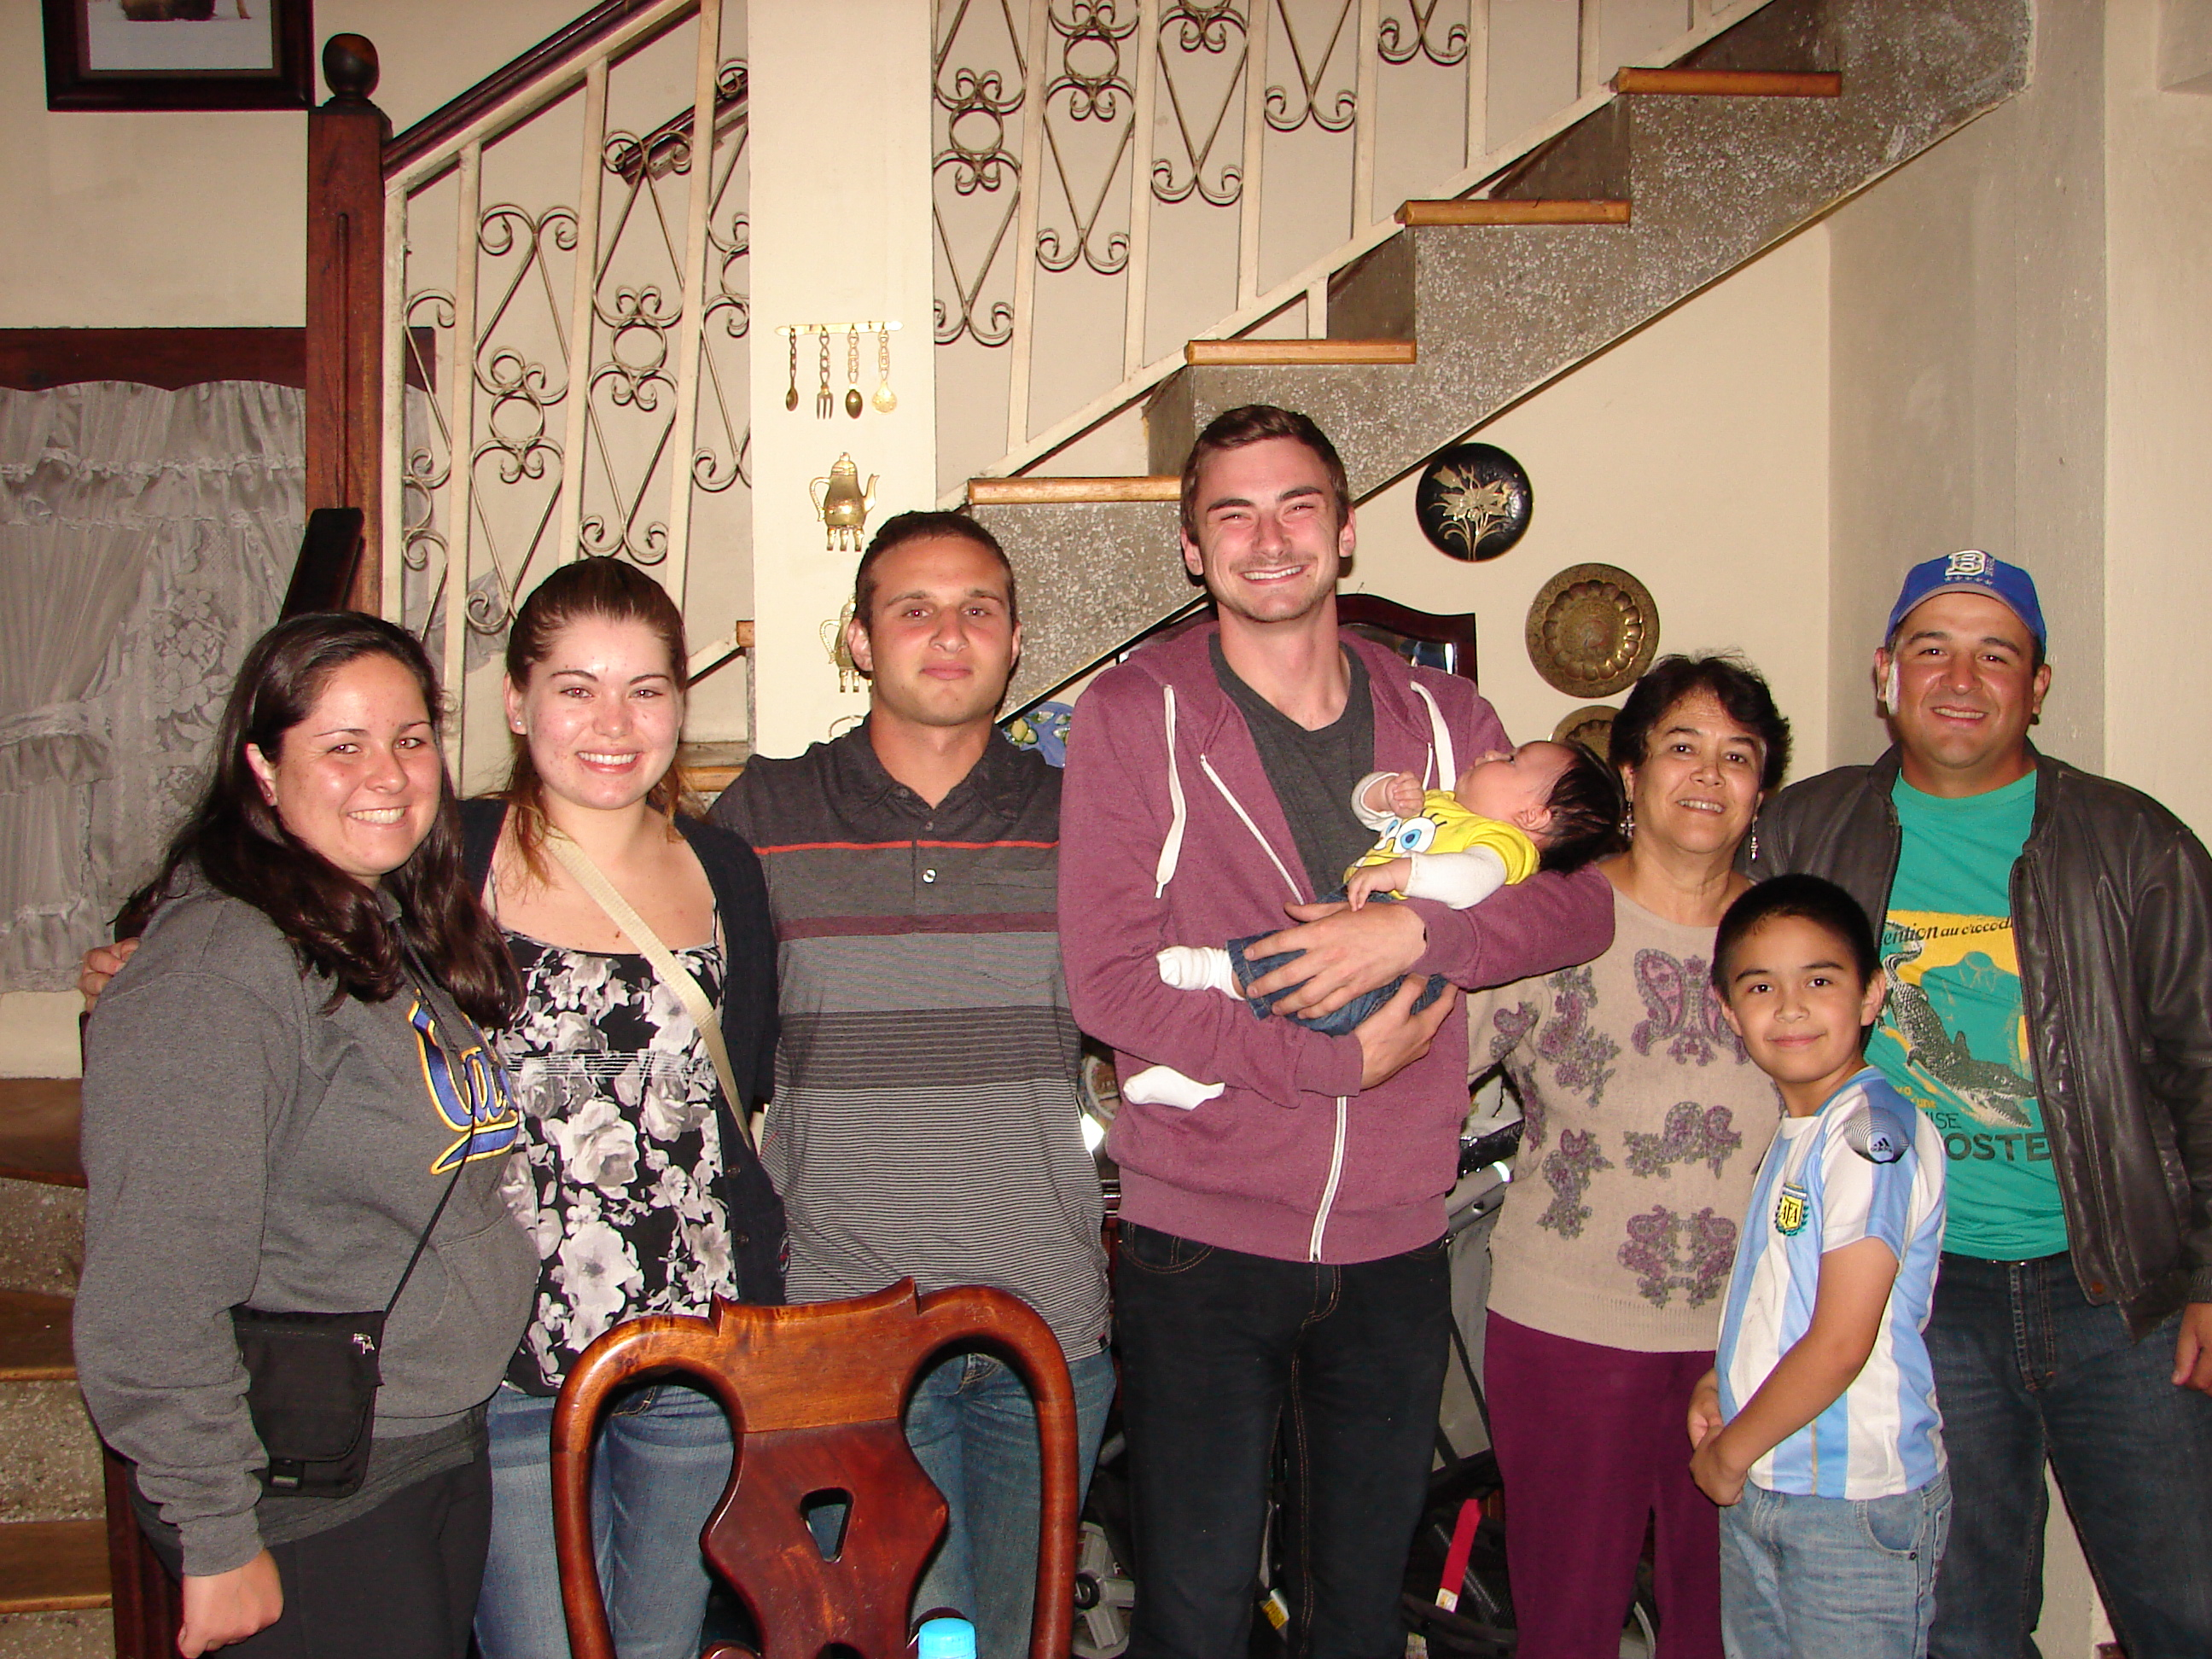 Summer Program - Other | Volunteer in GUATEMALA - Orphanage, Teaching, Animal Rescue and PreMed Program with A Broader View Volunteers